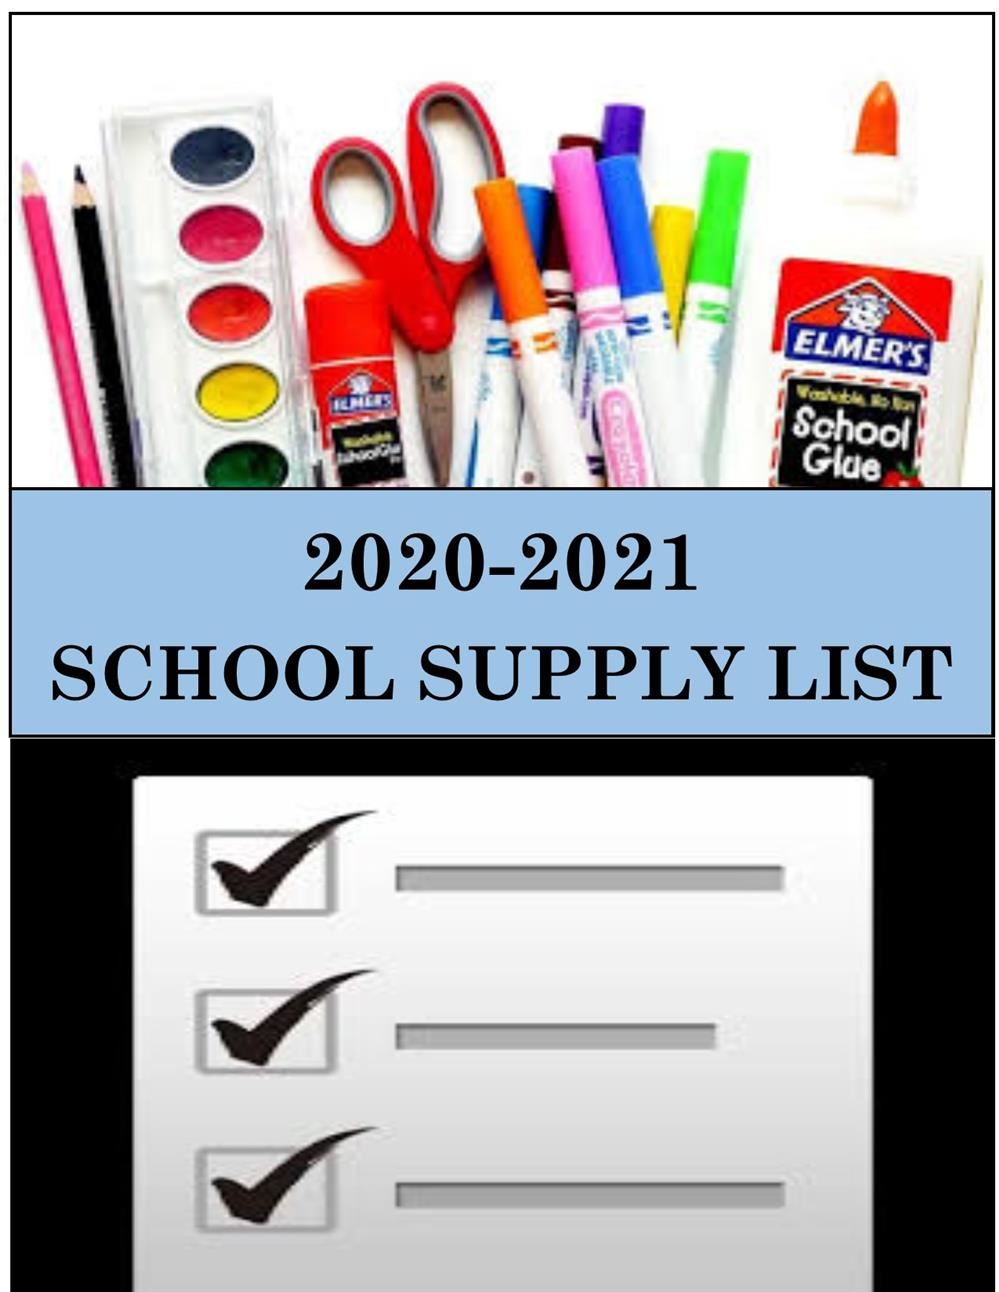 2020-2021 School Supply List